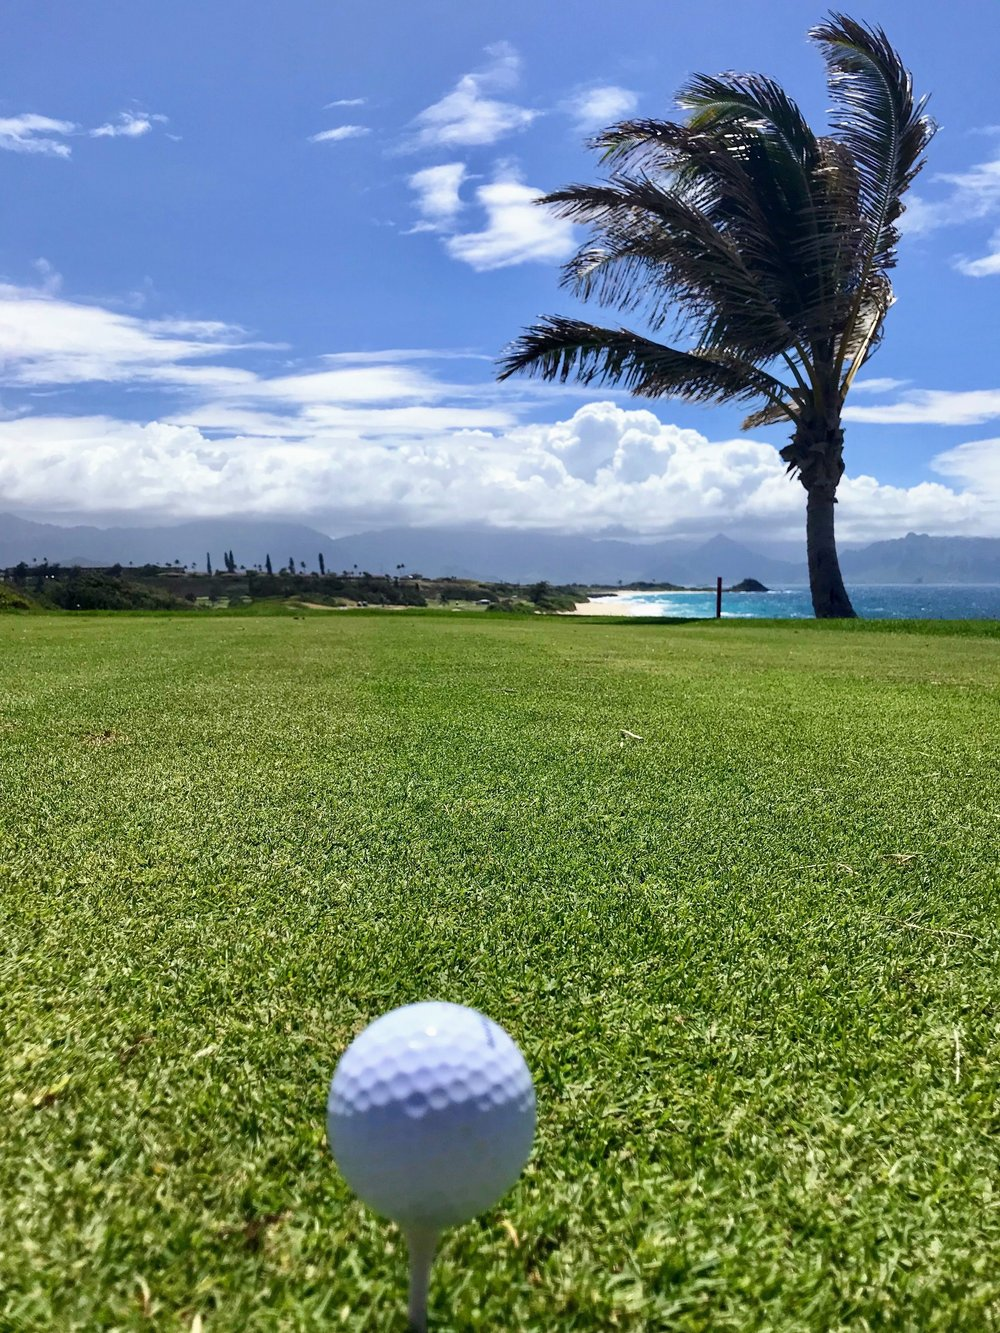 Golfing the North Shore of Oahu at one of the most beautiful courses I might ever play. Yes, I'd love to play Pebble. No, I don't want to drop $500.